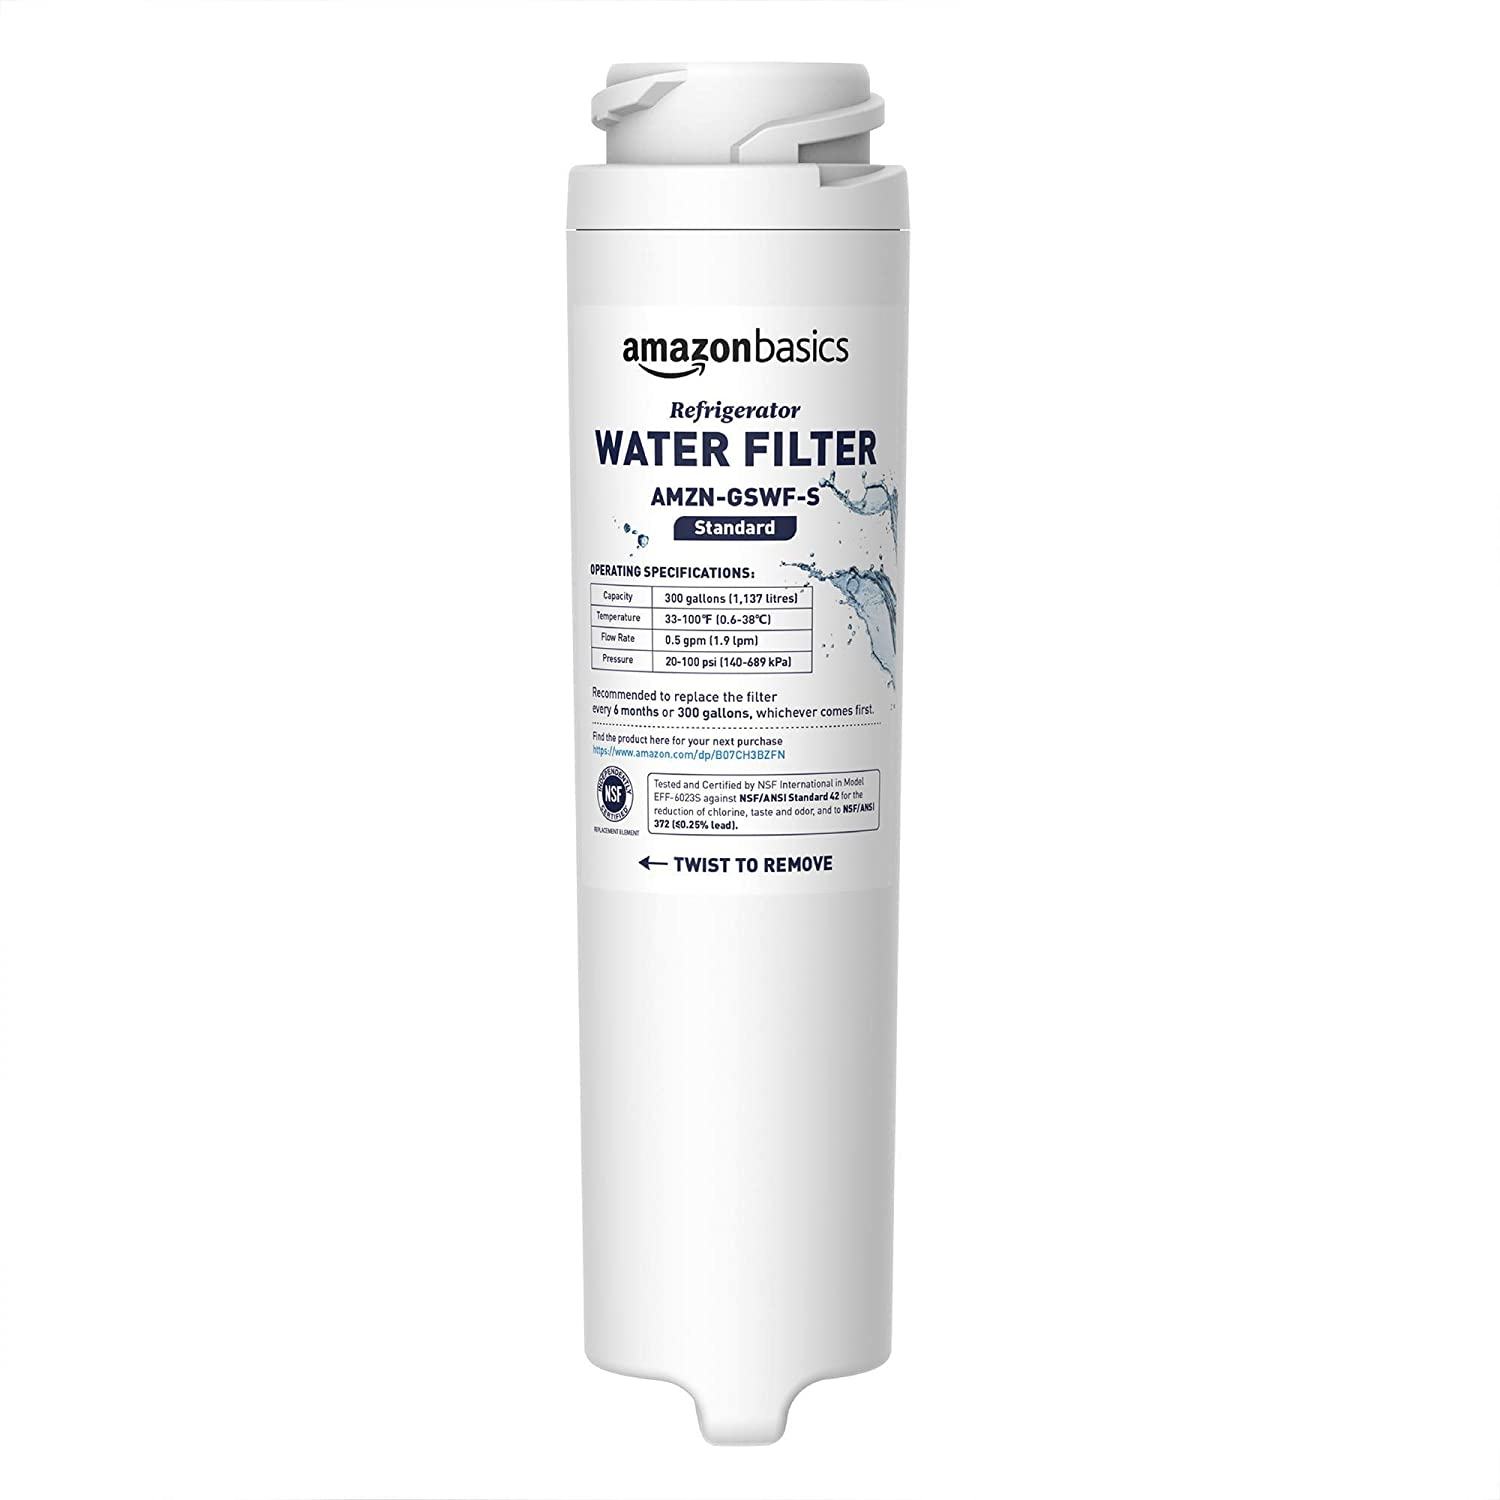 AmazonBasics Replacement GE GSWF Refrigerator Water Filter - Standard Filtration